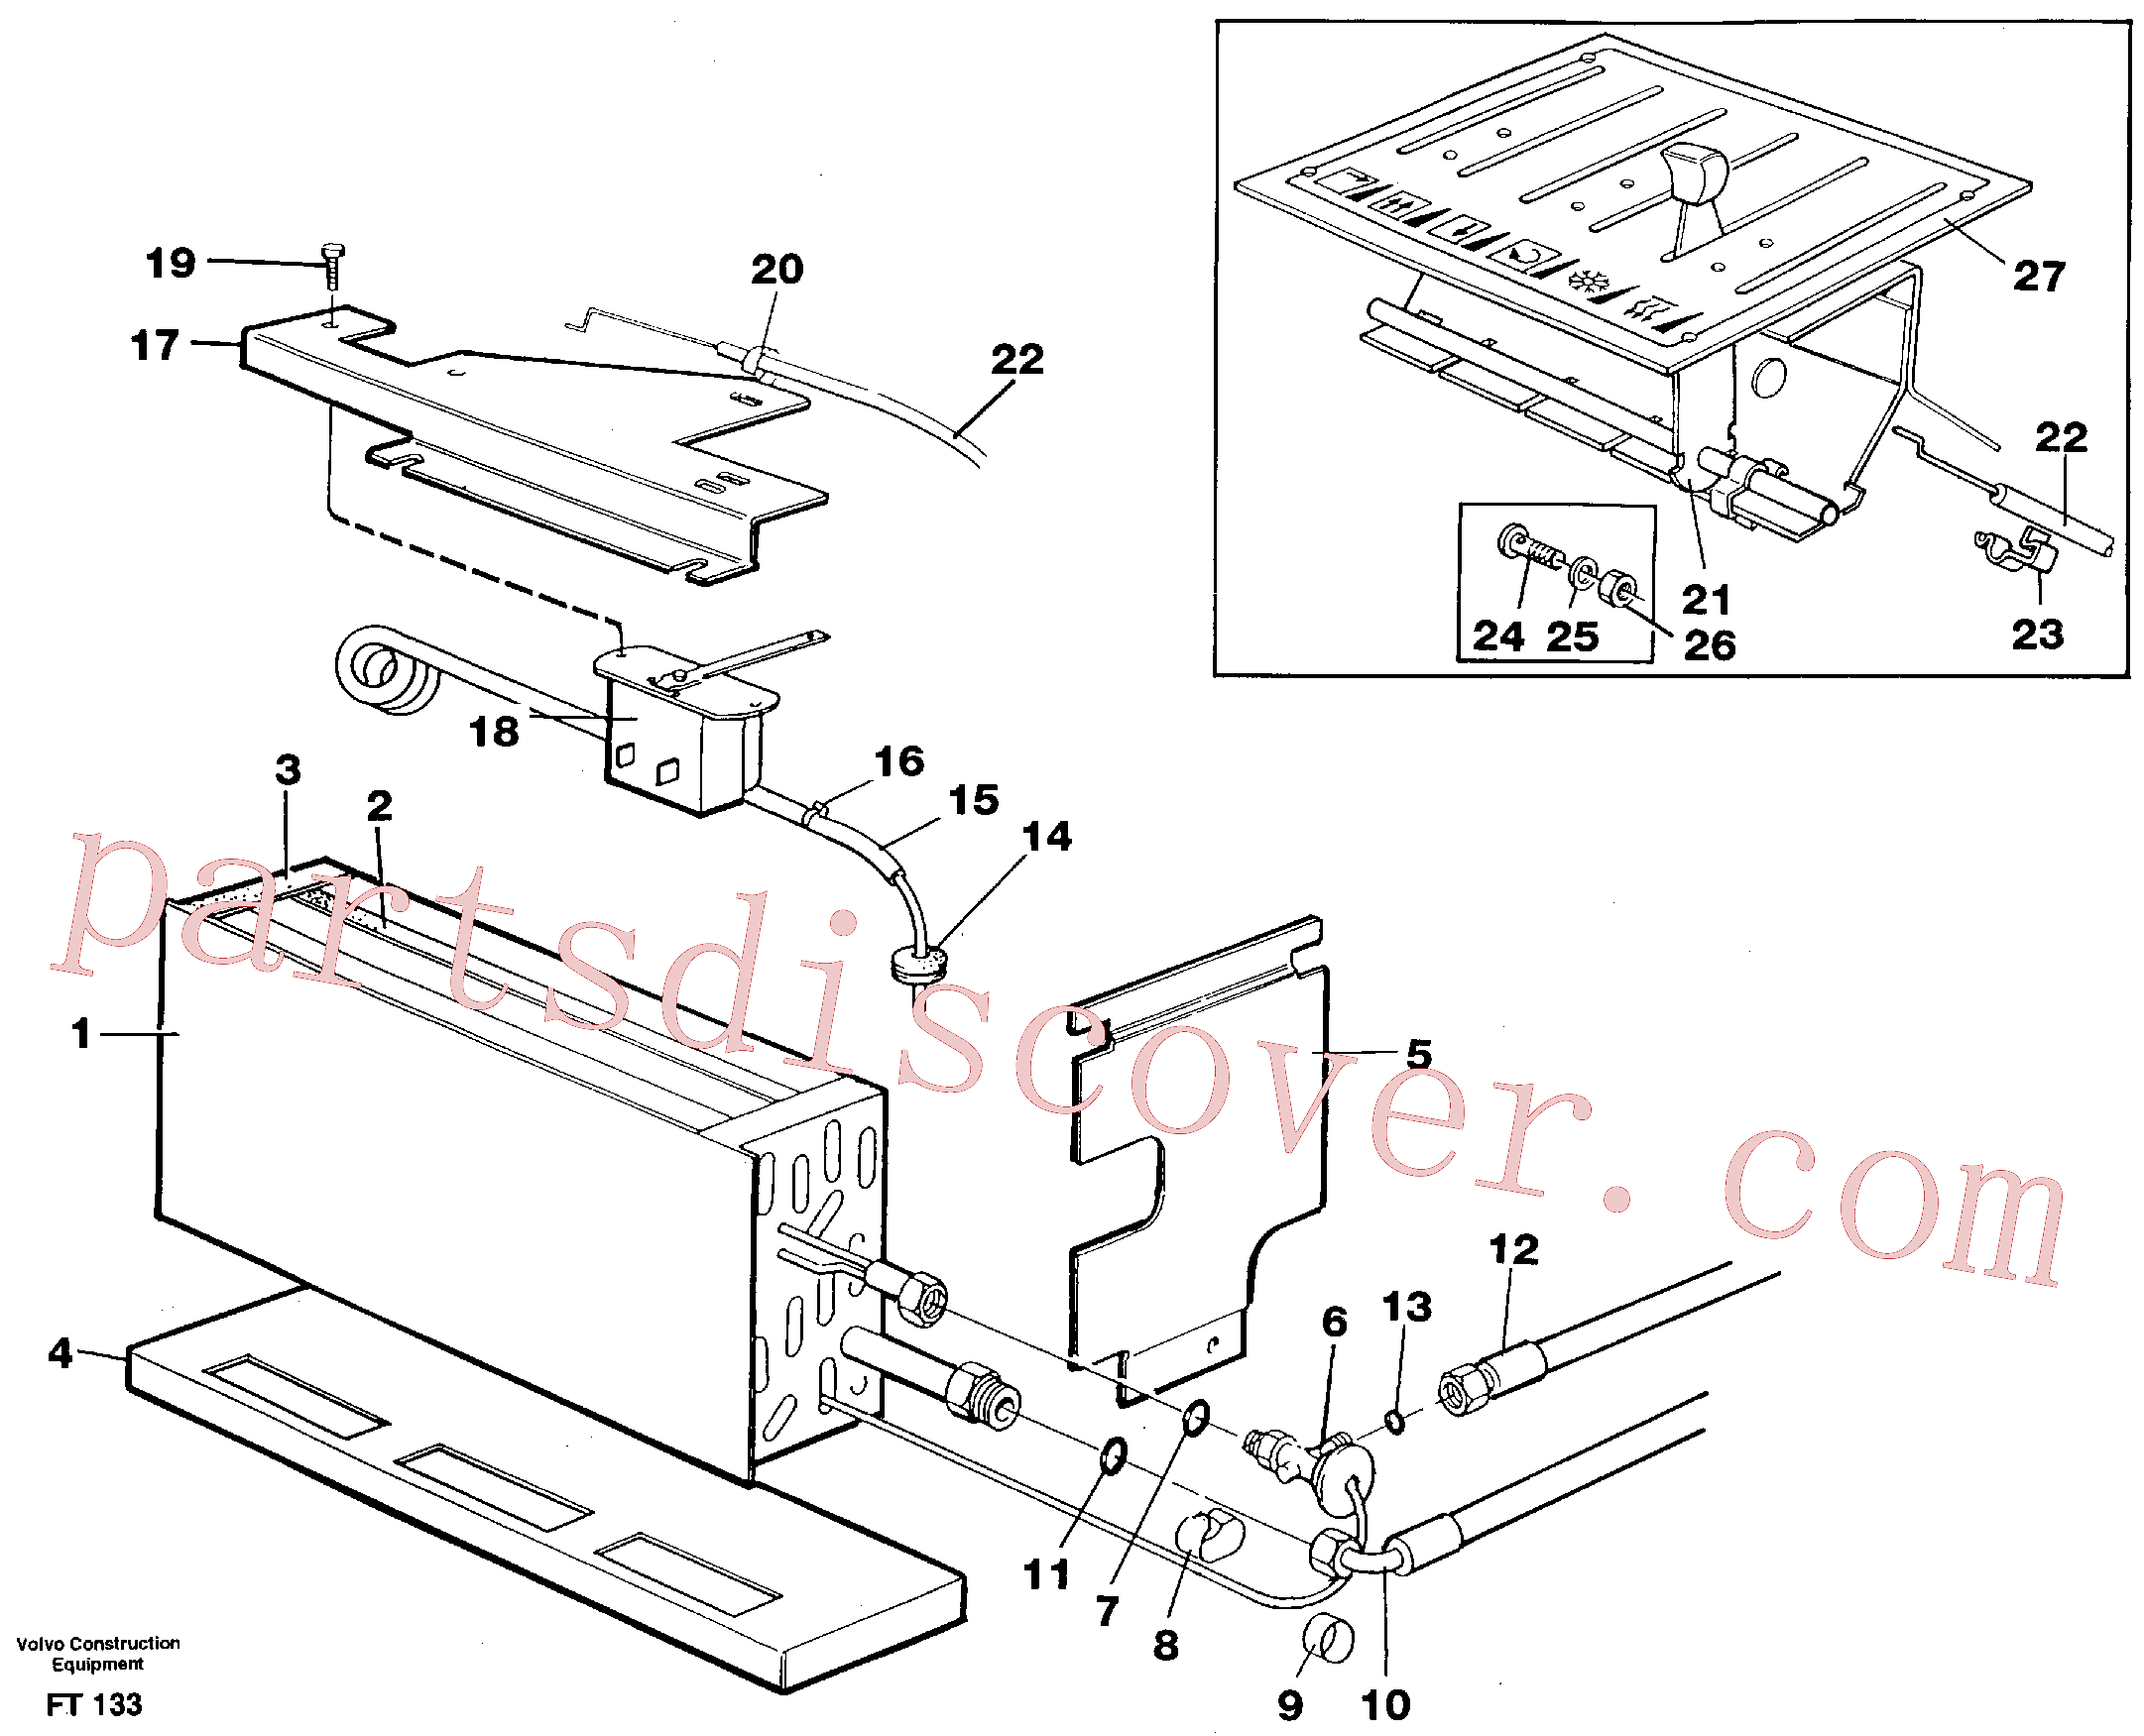 VOE14247154 for Volvo Evaporator with fitting parts, cooling agent R134a(FT133 assembly)